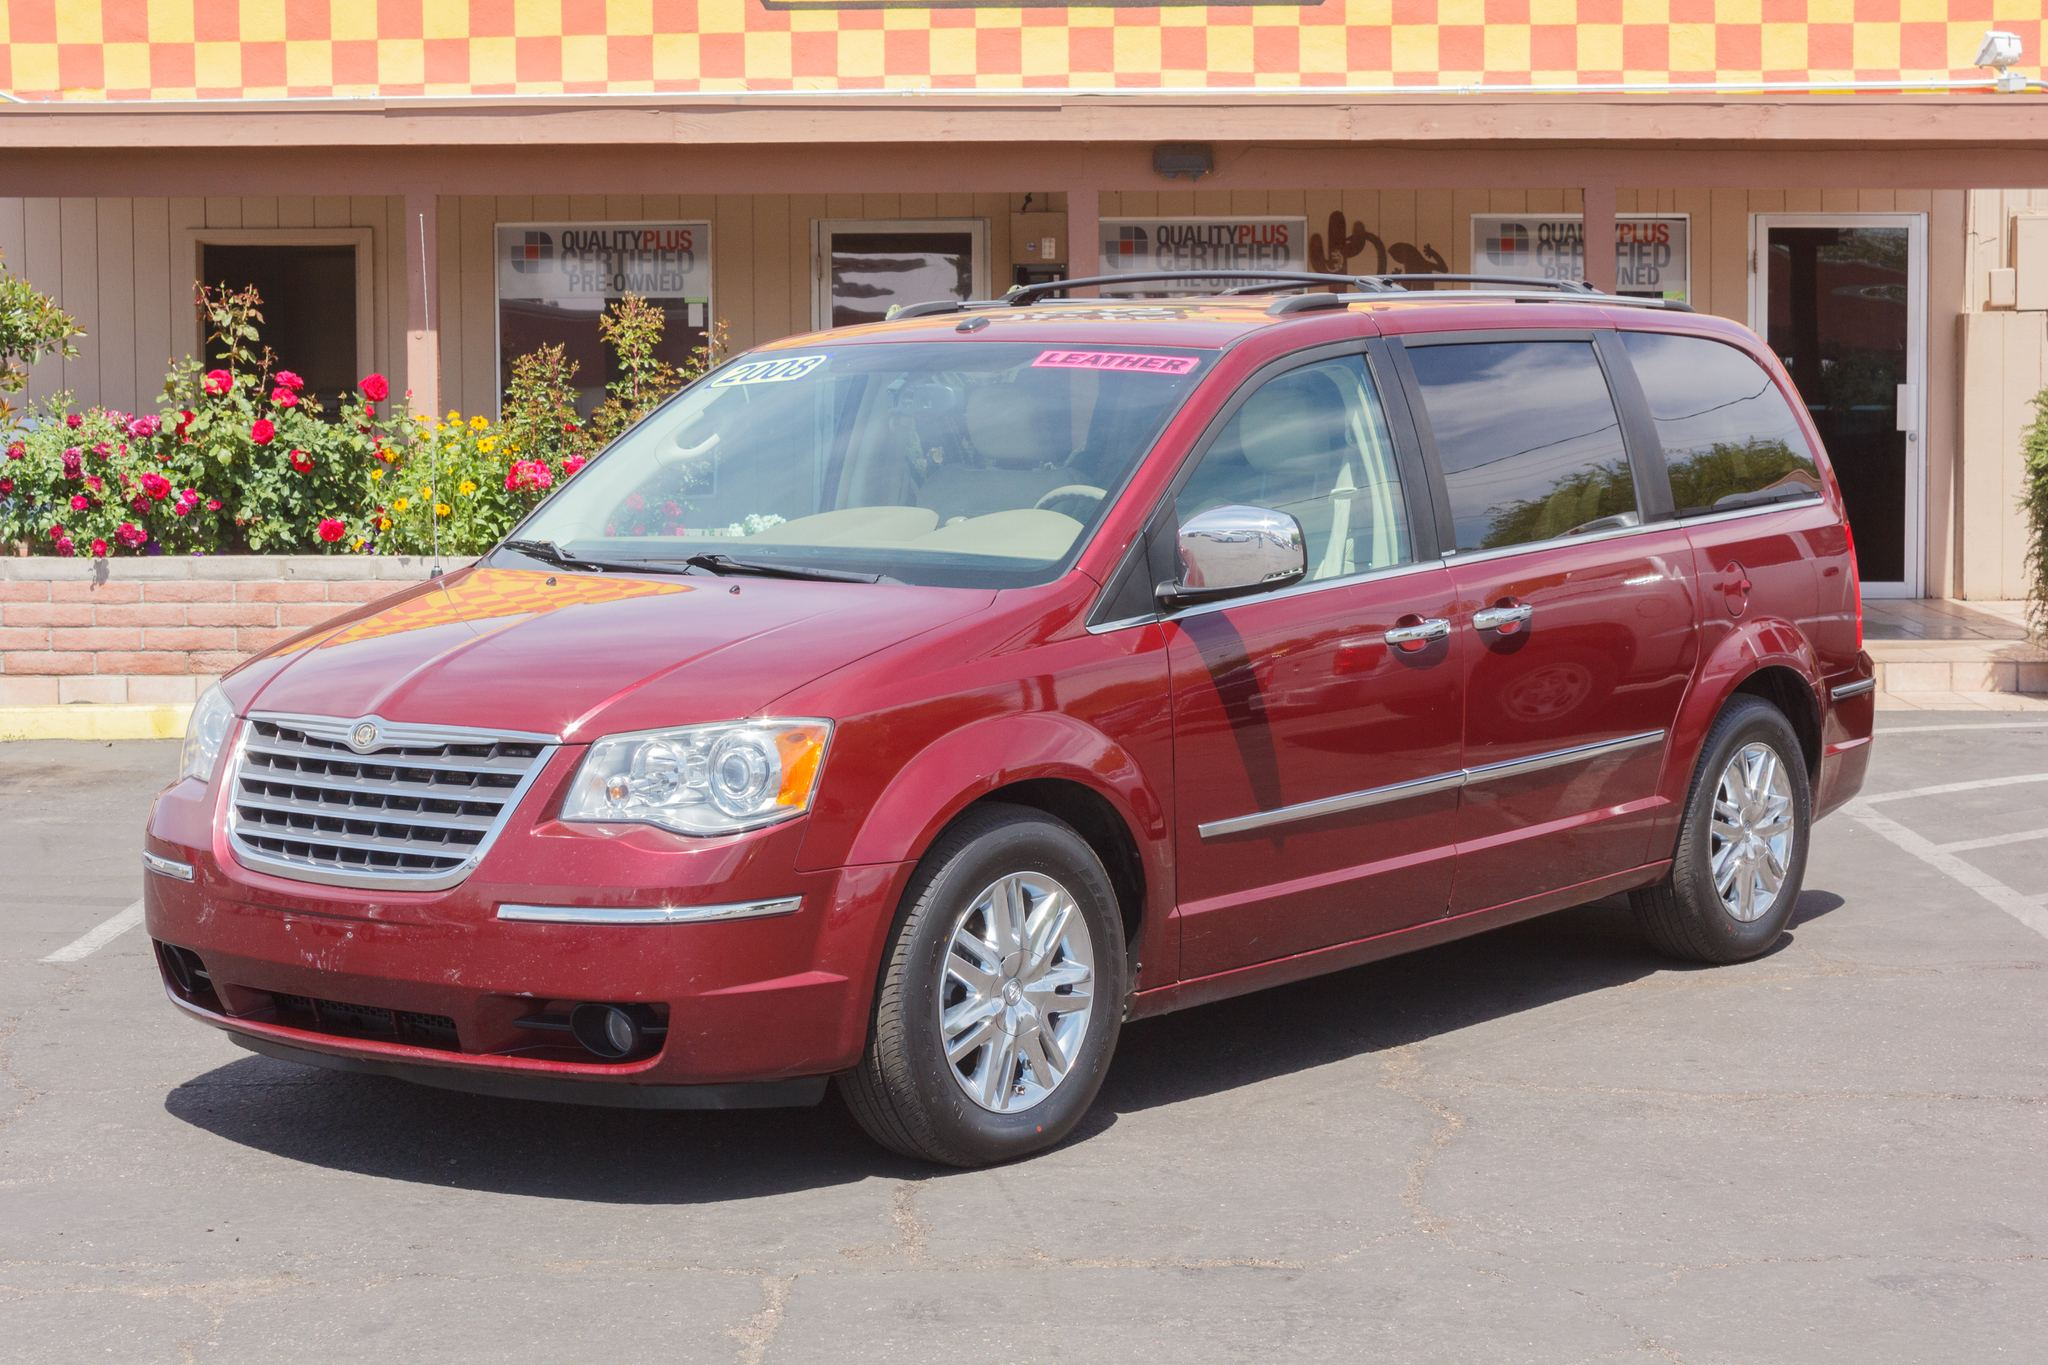 Photo of 2008 Chrysler Town & Country 4d Wagon Limited Inferno Red Crystal Pearlcoat